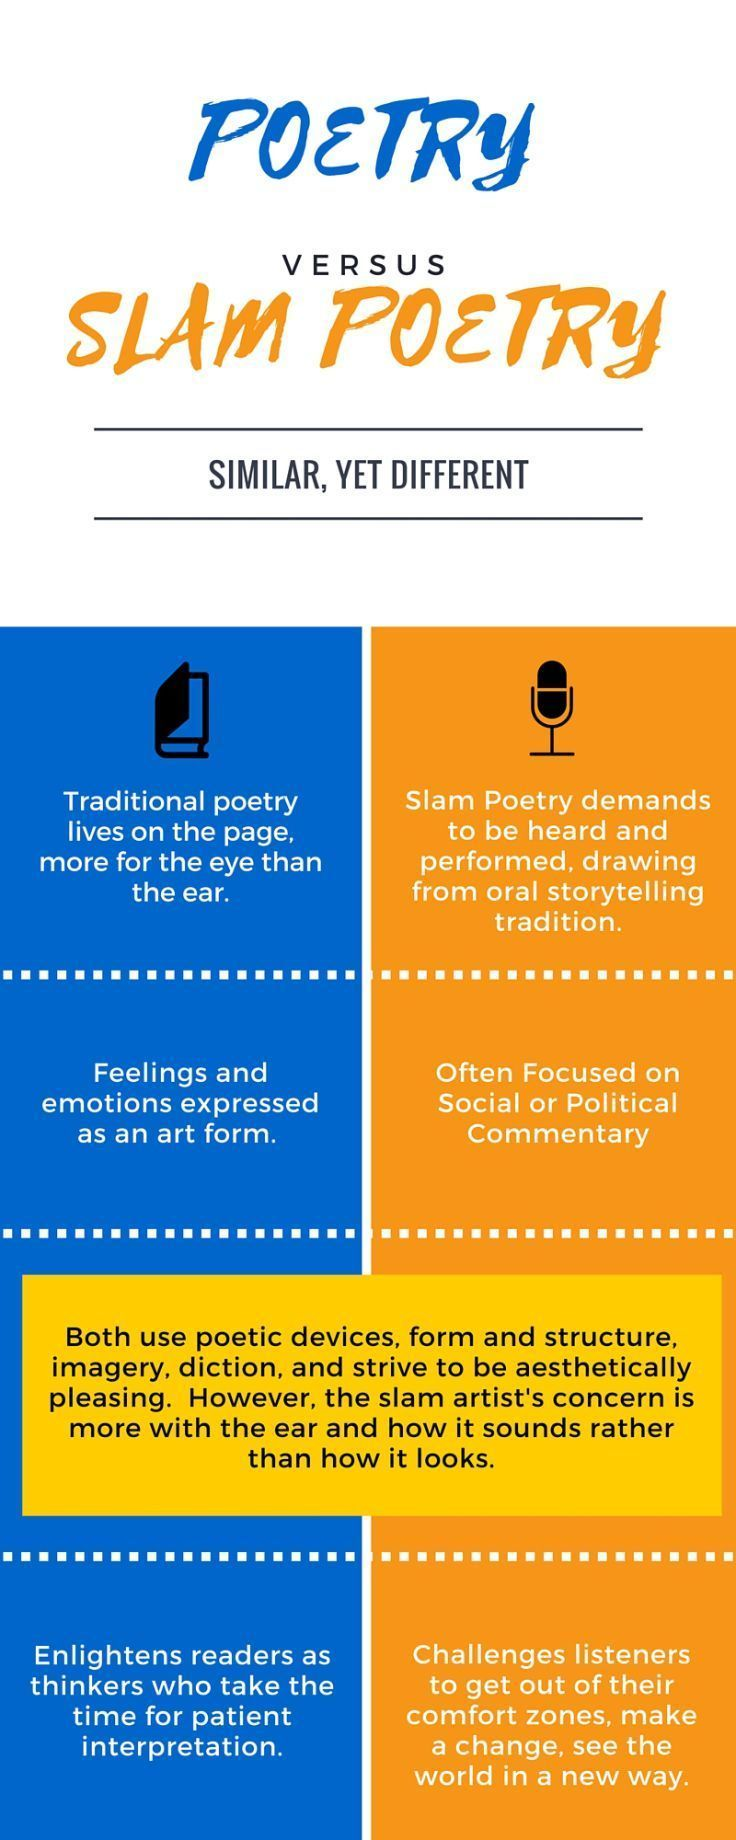 Infographic explains the difference between slam poetry and traditional poetry.  Students love this growing art form and often shy away from traditional poetry, so what are commonalities and differences?